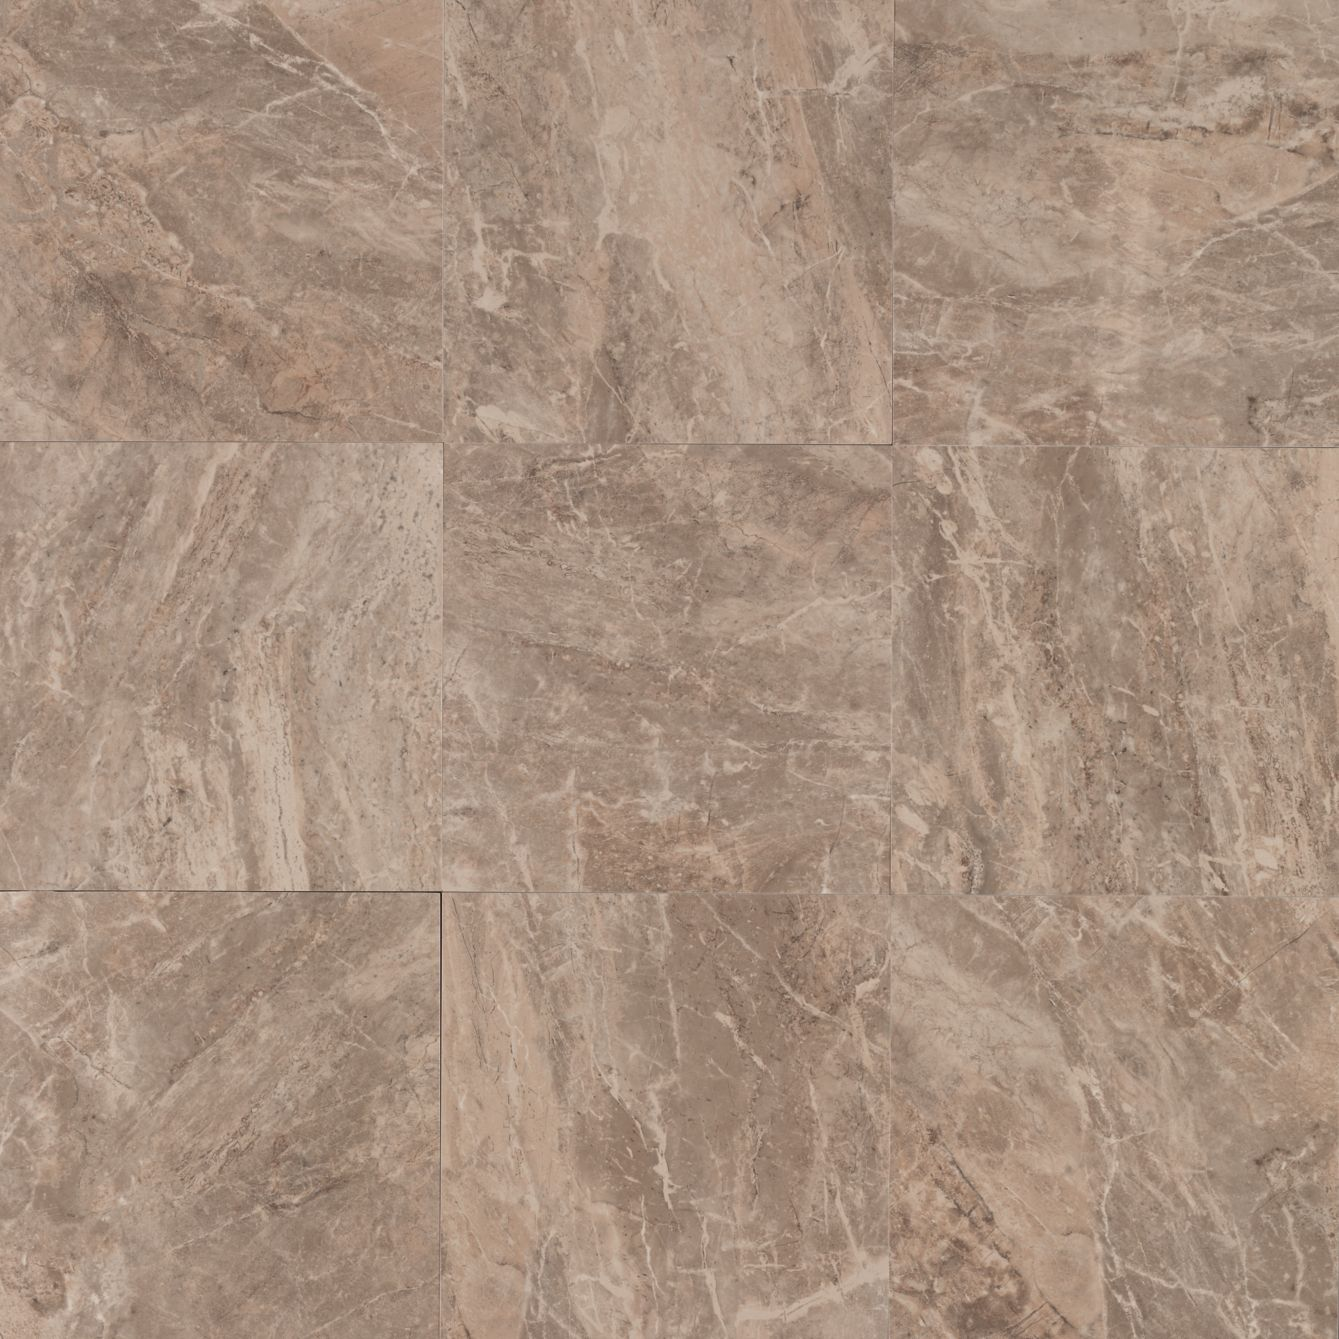 CeramicPorcelainTile ApremontWall T812F-AE97 GialloHighGloss